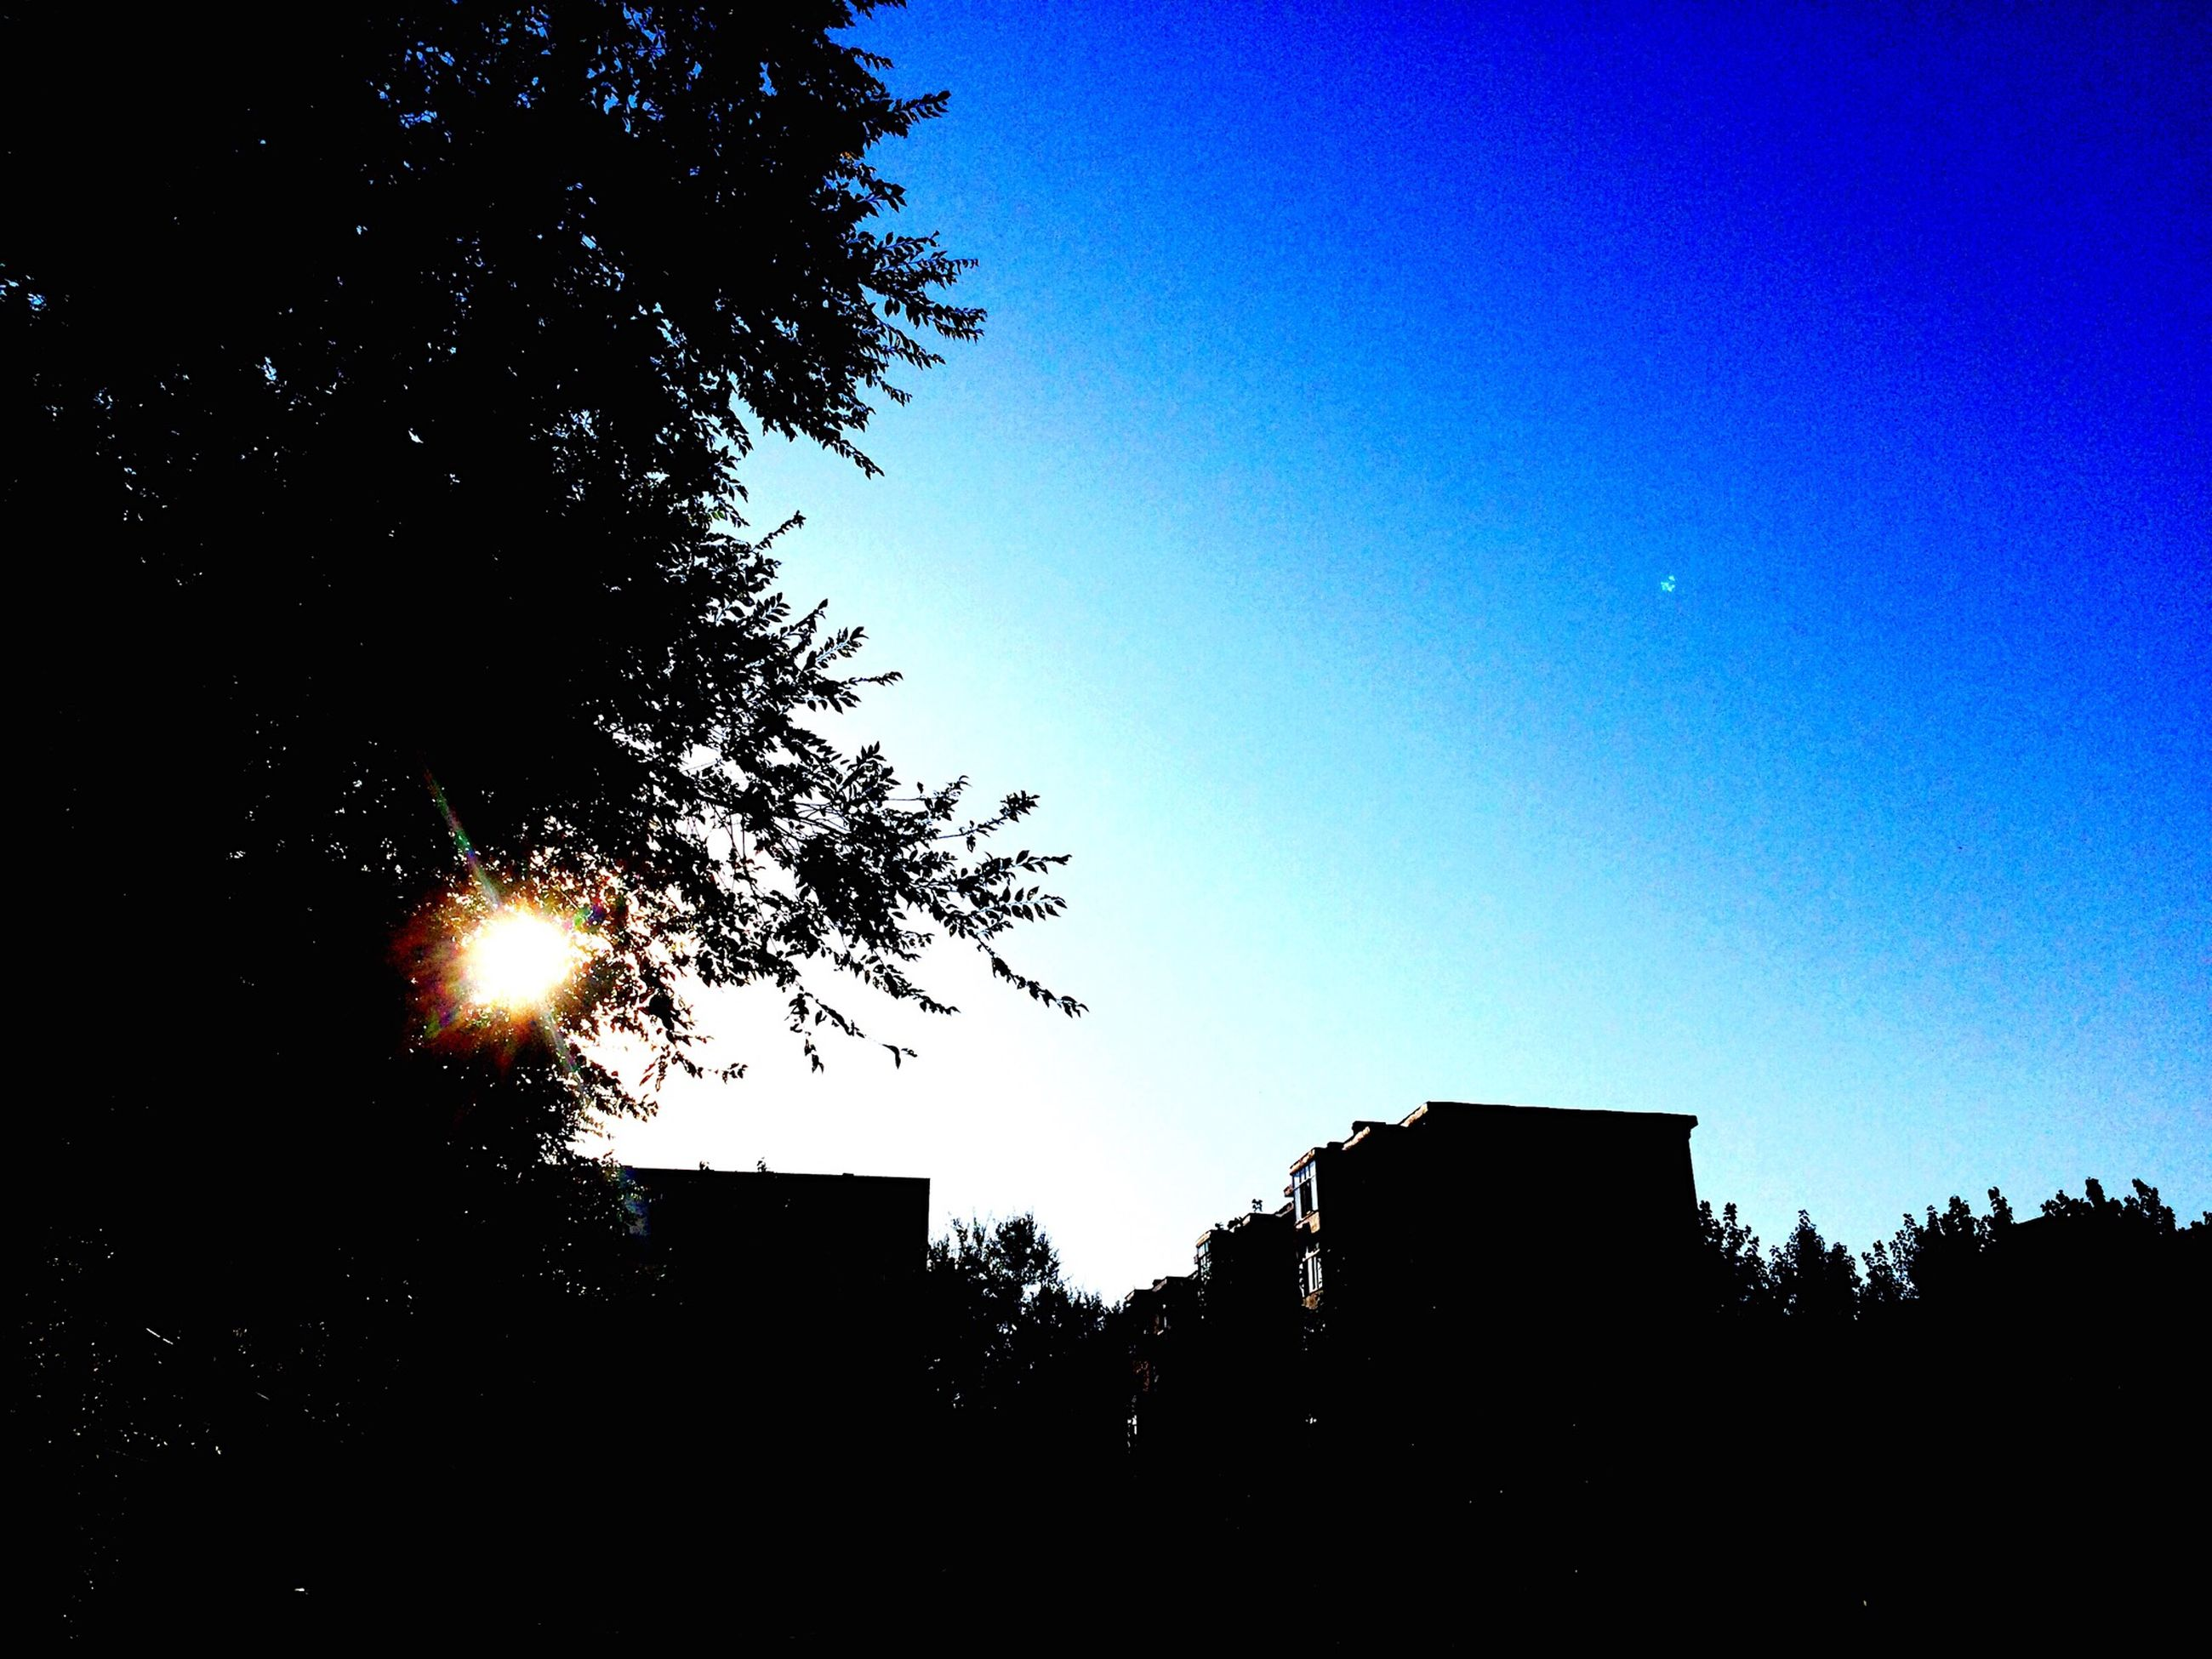 building exterior, built structure, silhouette, architecture, clear sky, low angle view, tree, sun, blue, sunset, sunlight, copy space, house, sky, branch, bare tree, outdoors, residential structure, no people, nature